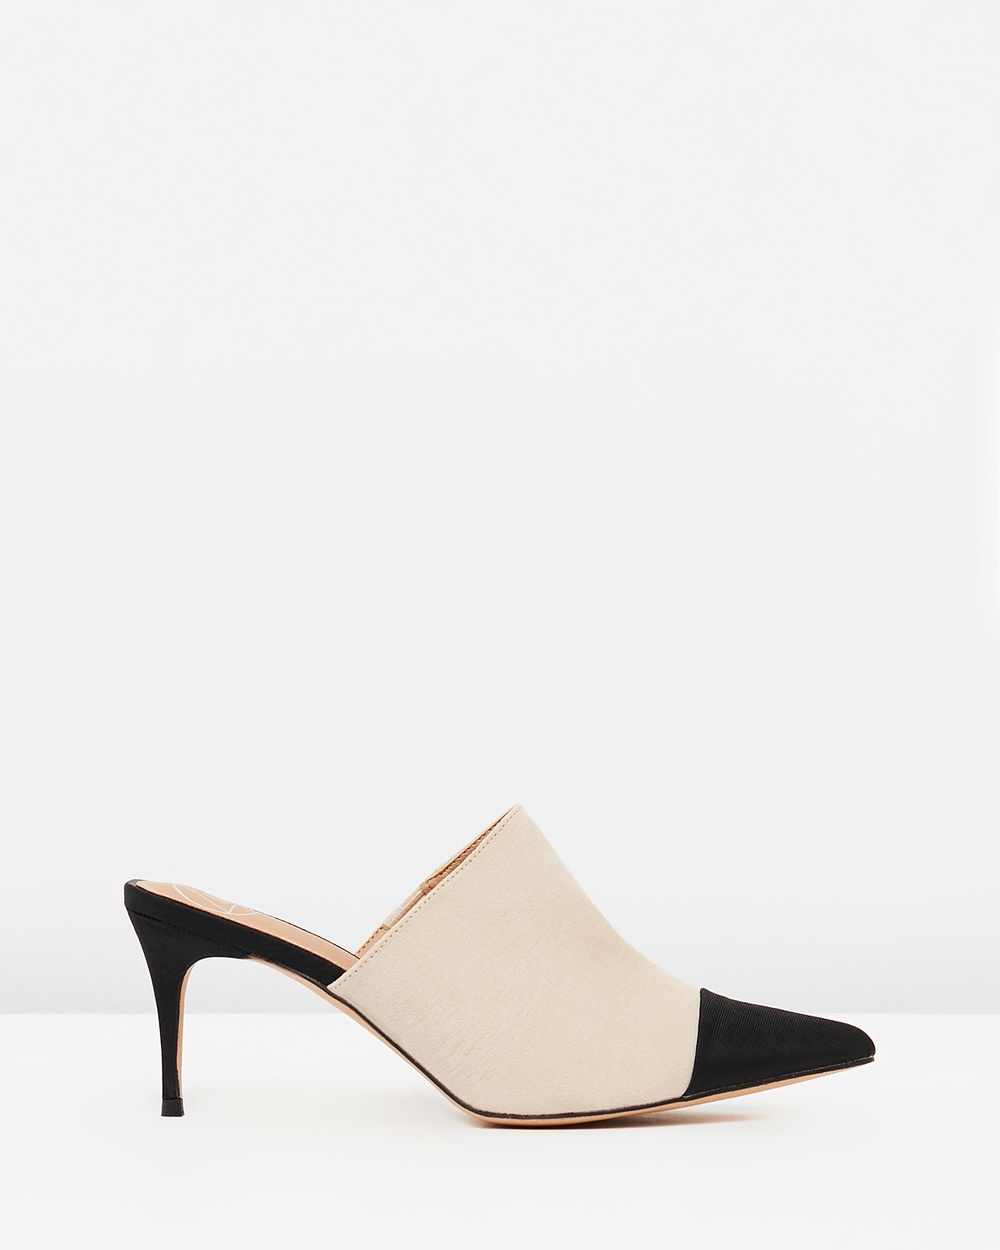 Missguided Toe Cap Pointed Heeled Mules Mid-low heels Nude Toe Cap Pointed Heeled Mules